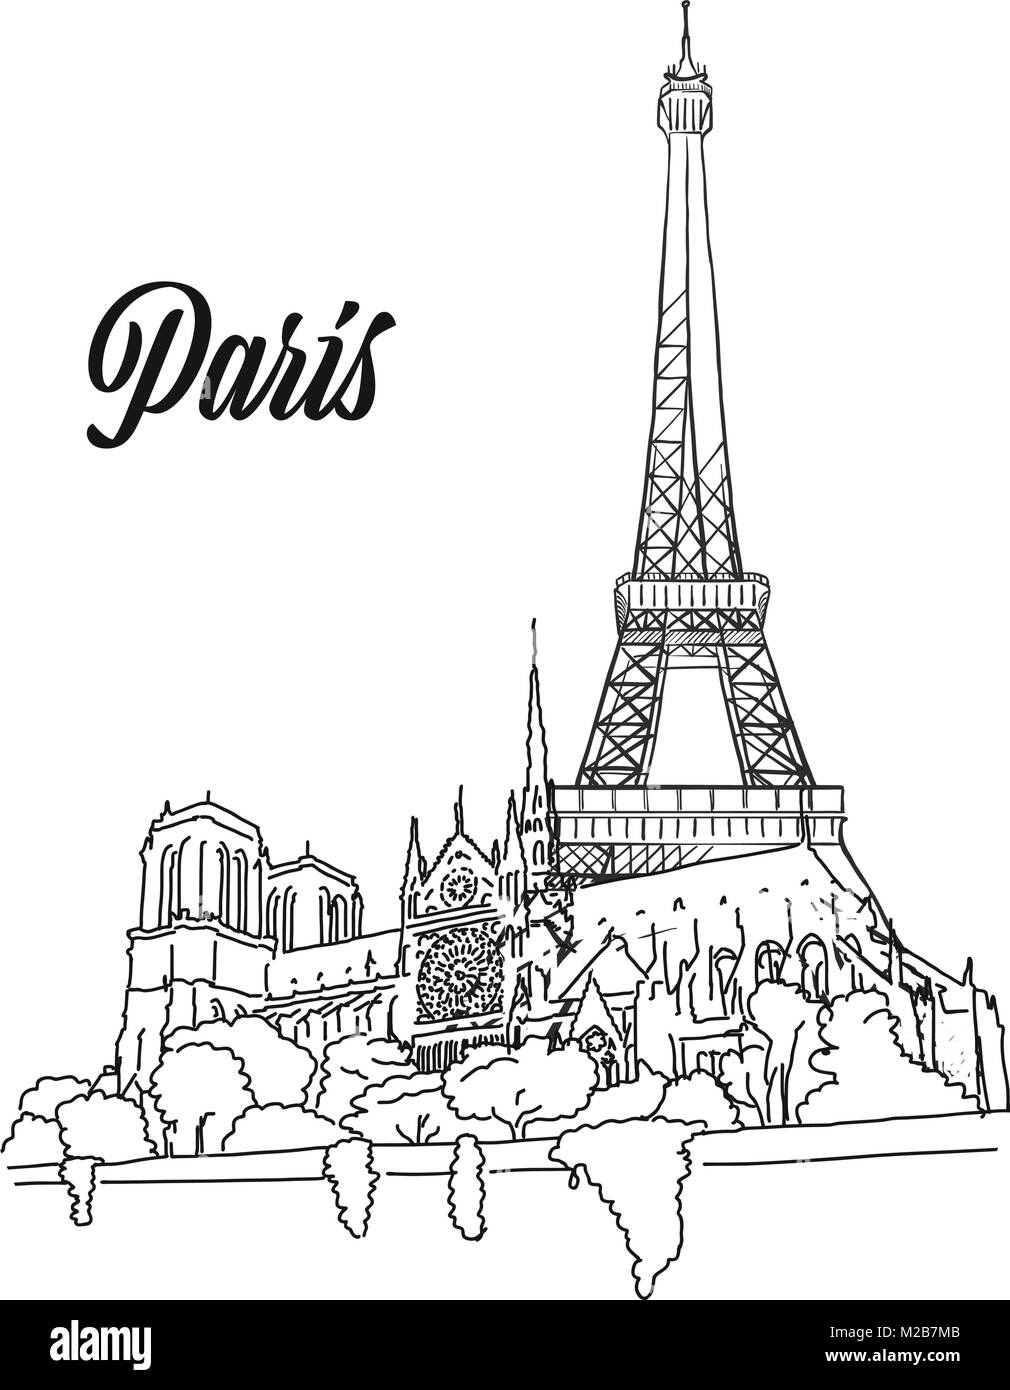 Paris Landmark Banner Sign, hand drawn outline illustration for print design and travel marketing - Stock Image